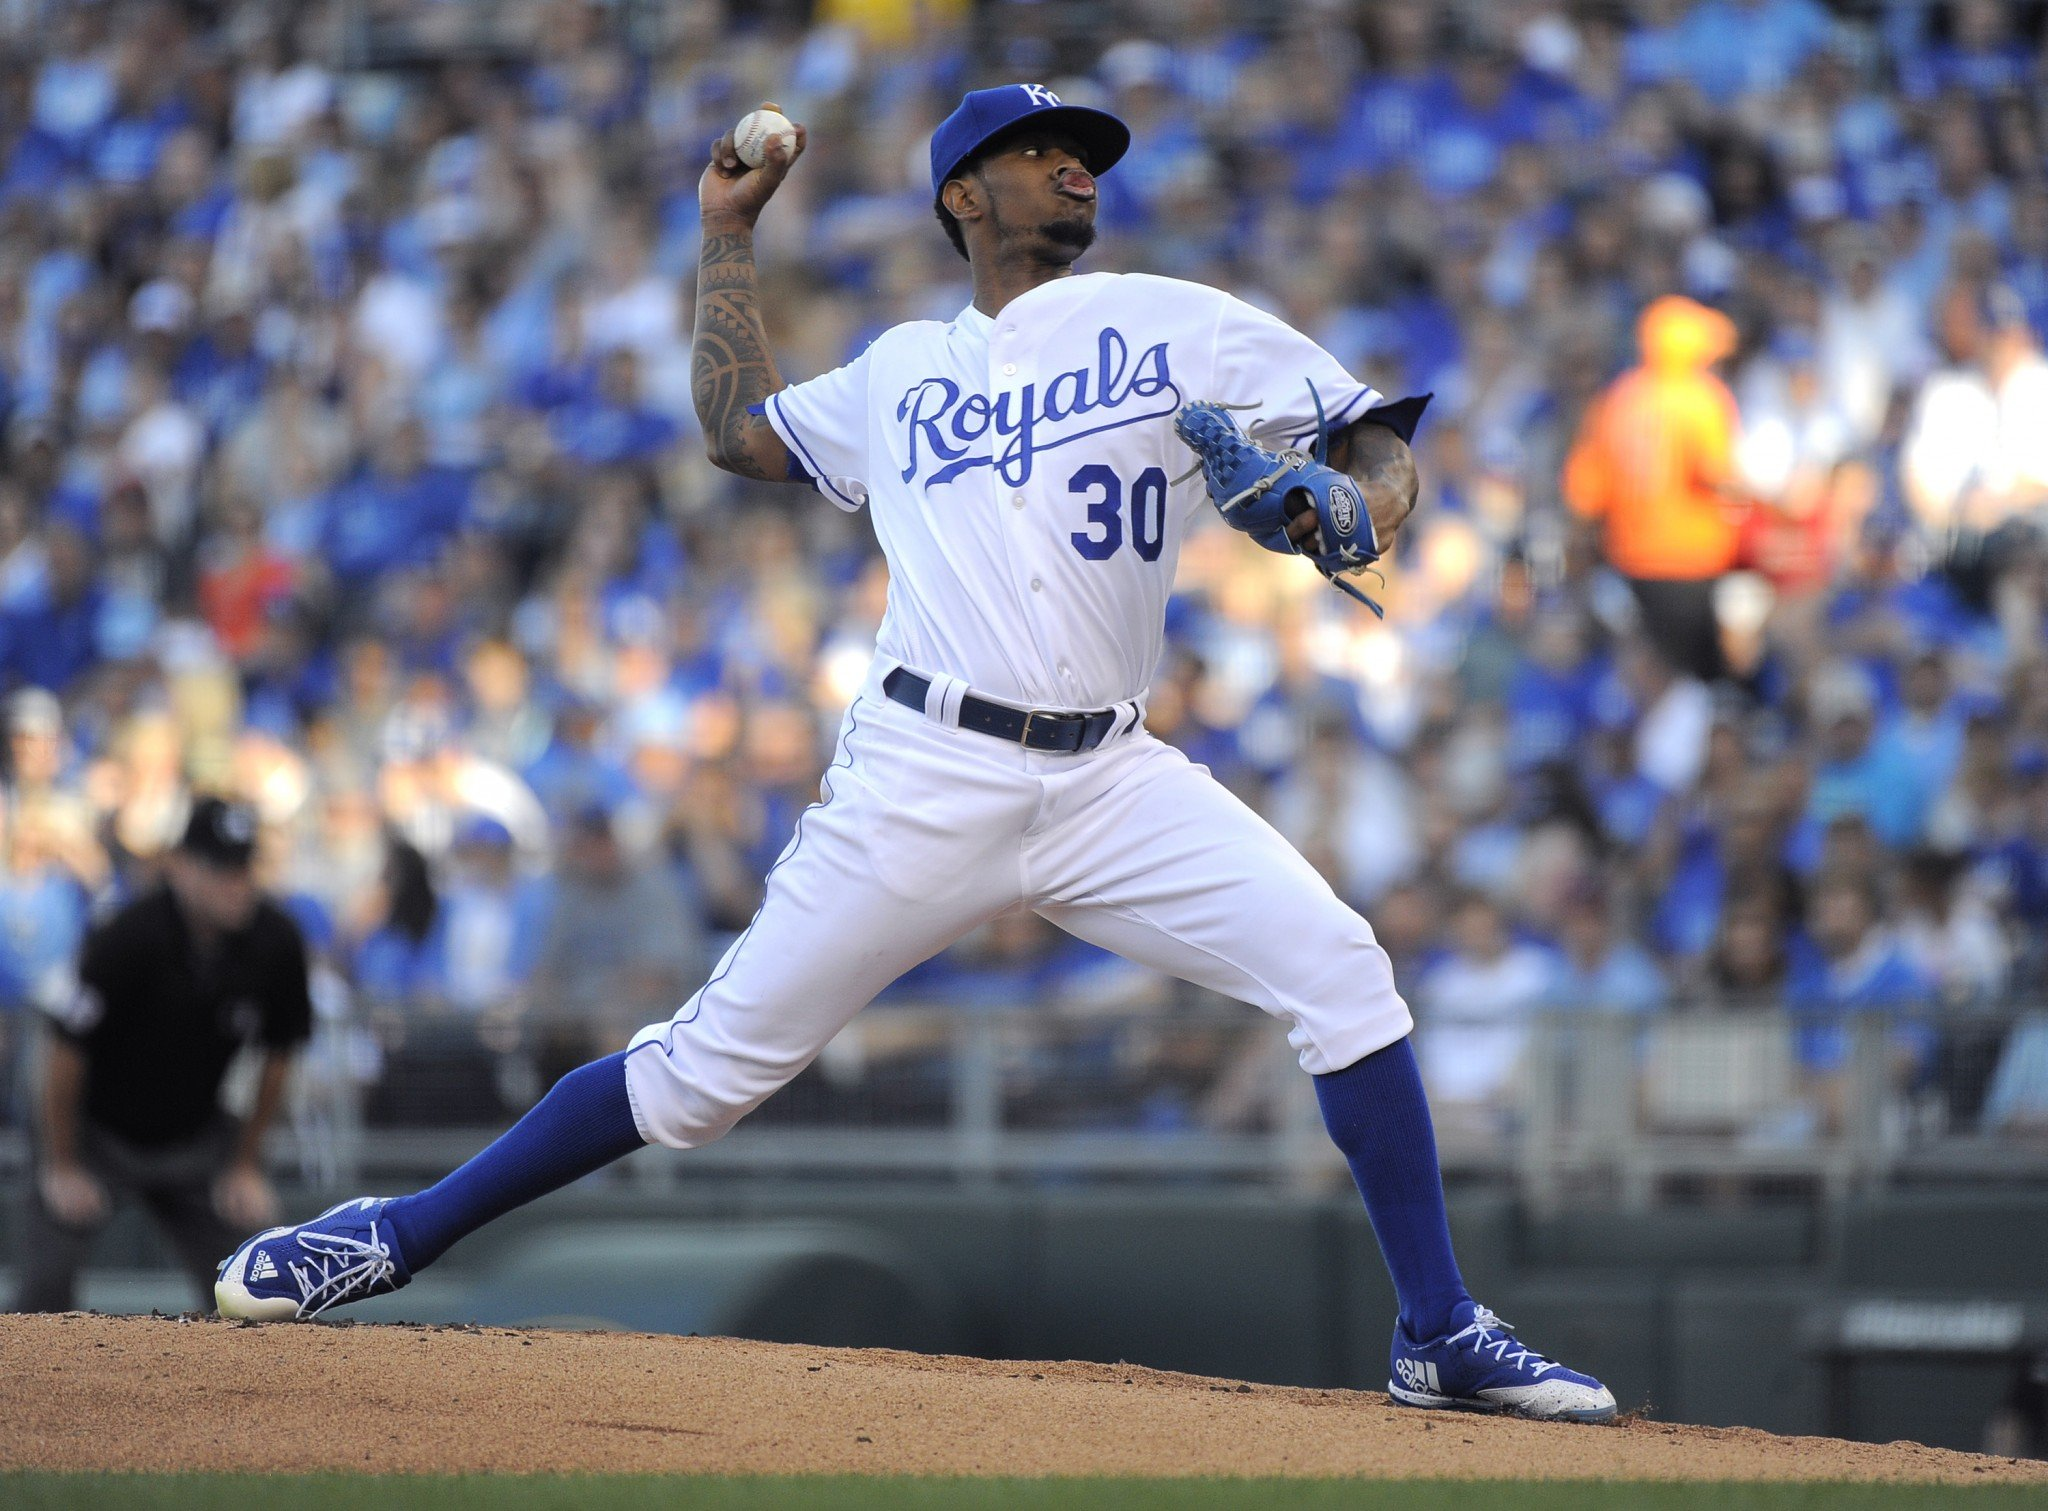 Yordano Ventura will be remembered by the Royals with a jersey patch. (Getty Images)